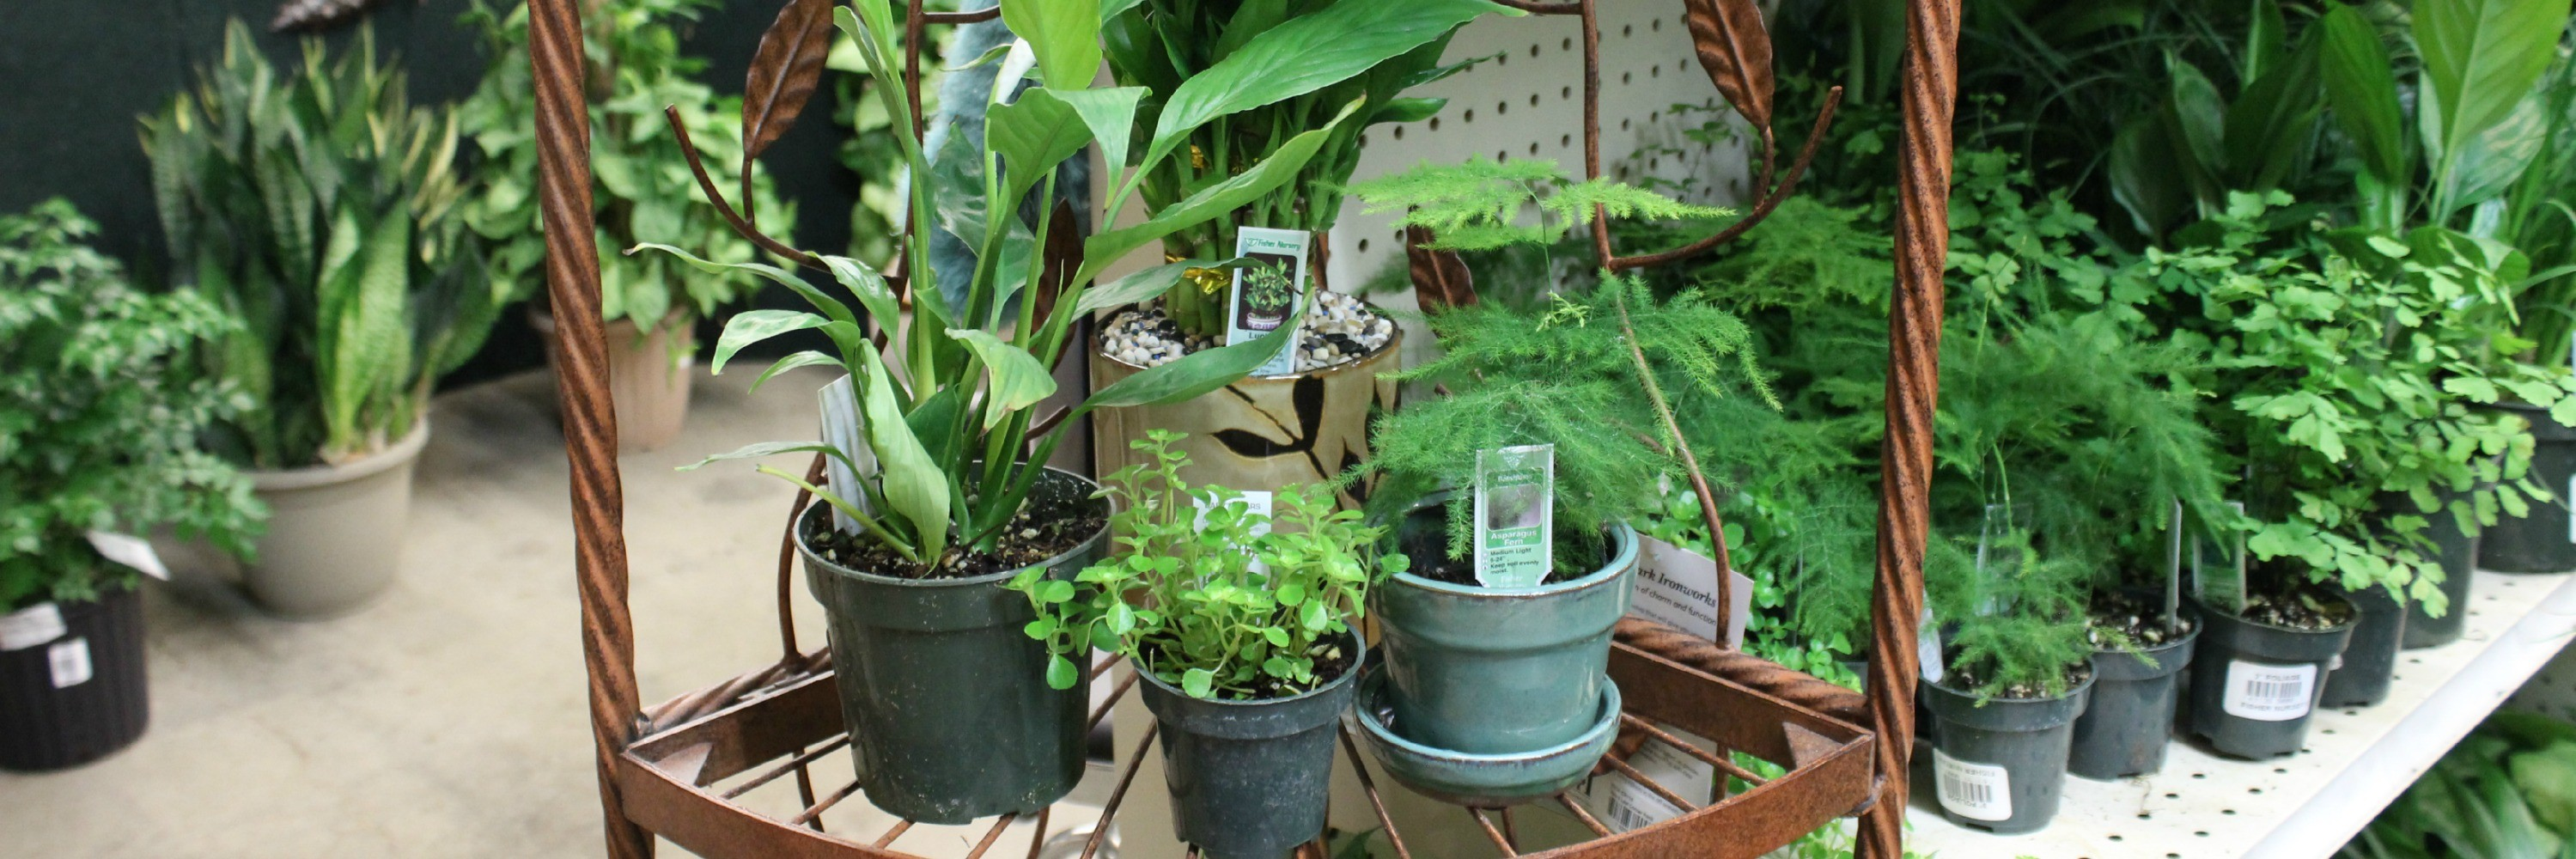 Buy cheap plants in dubai order online outdoor plants in dubai category banner izmirmasajfo Image collections